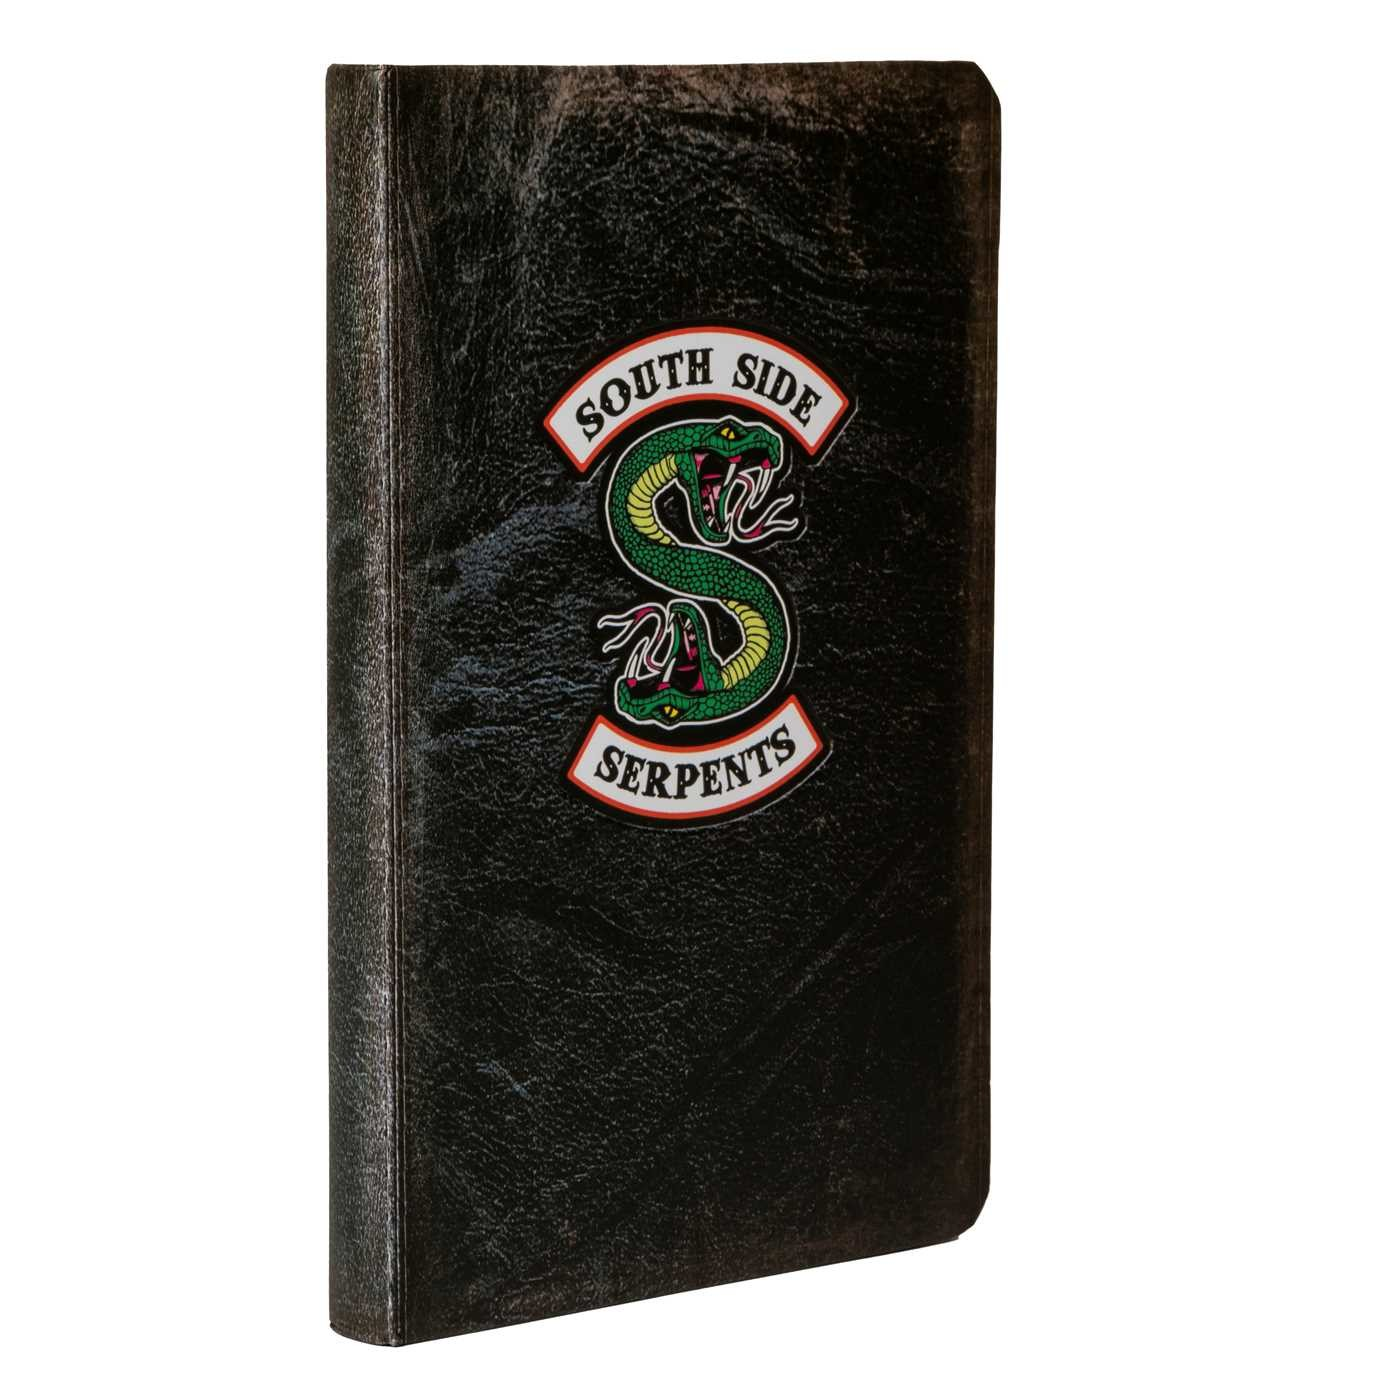 Riverdale hardcover ruled journal 9781683836049.in04